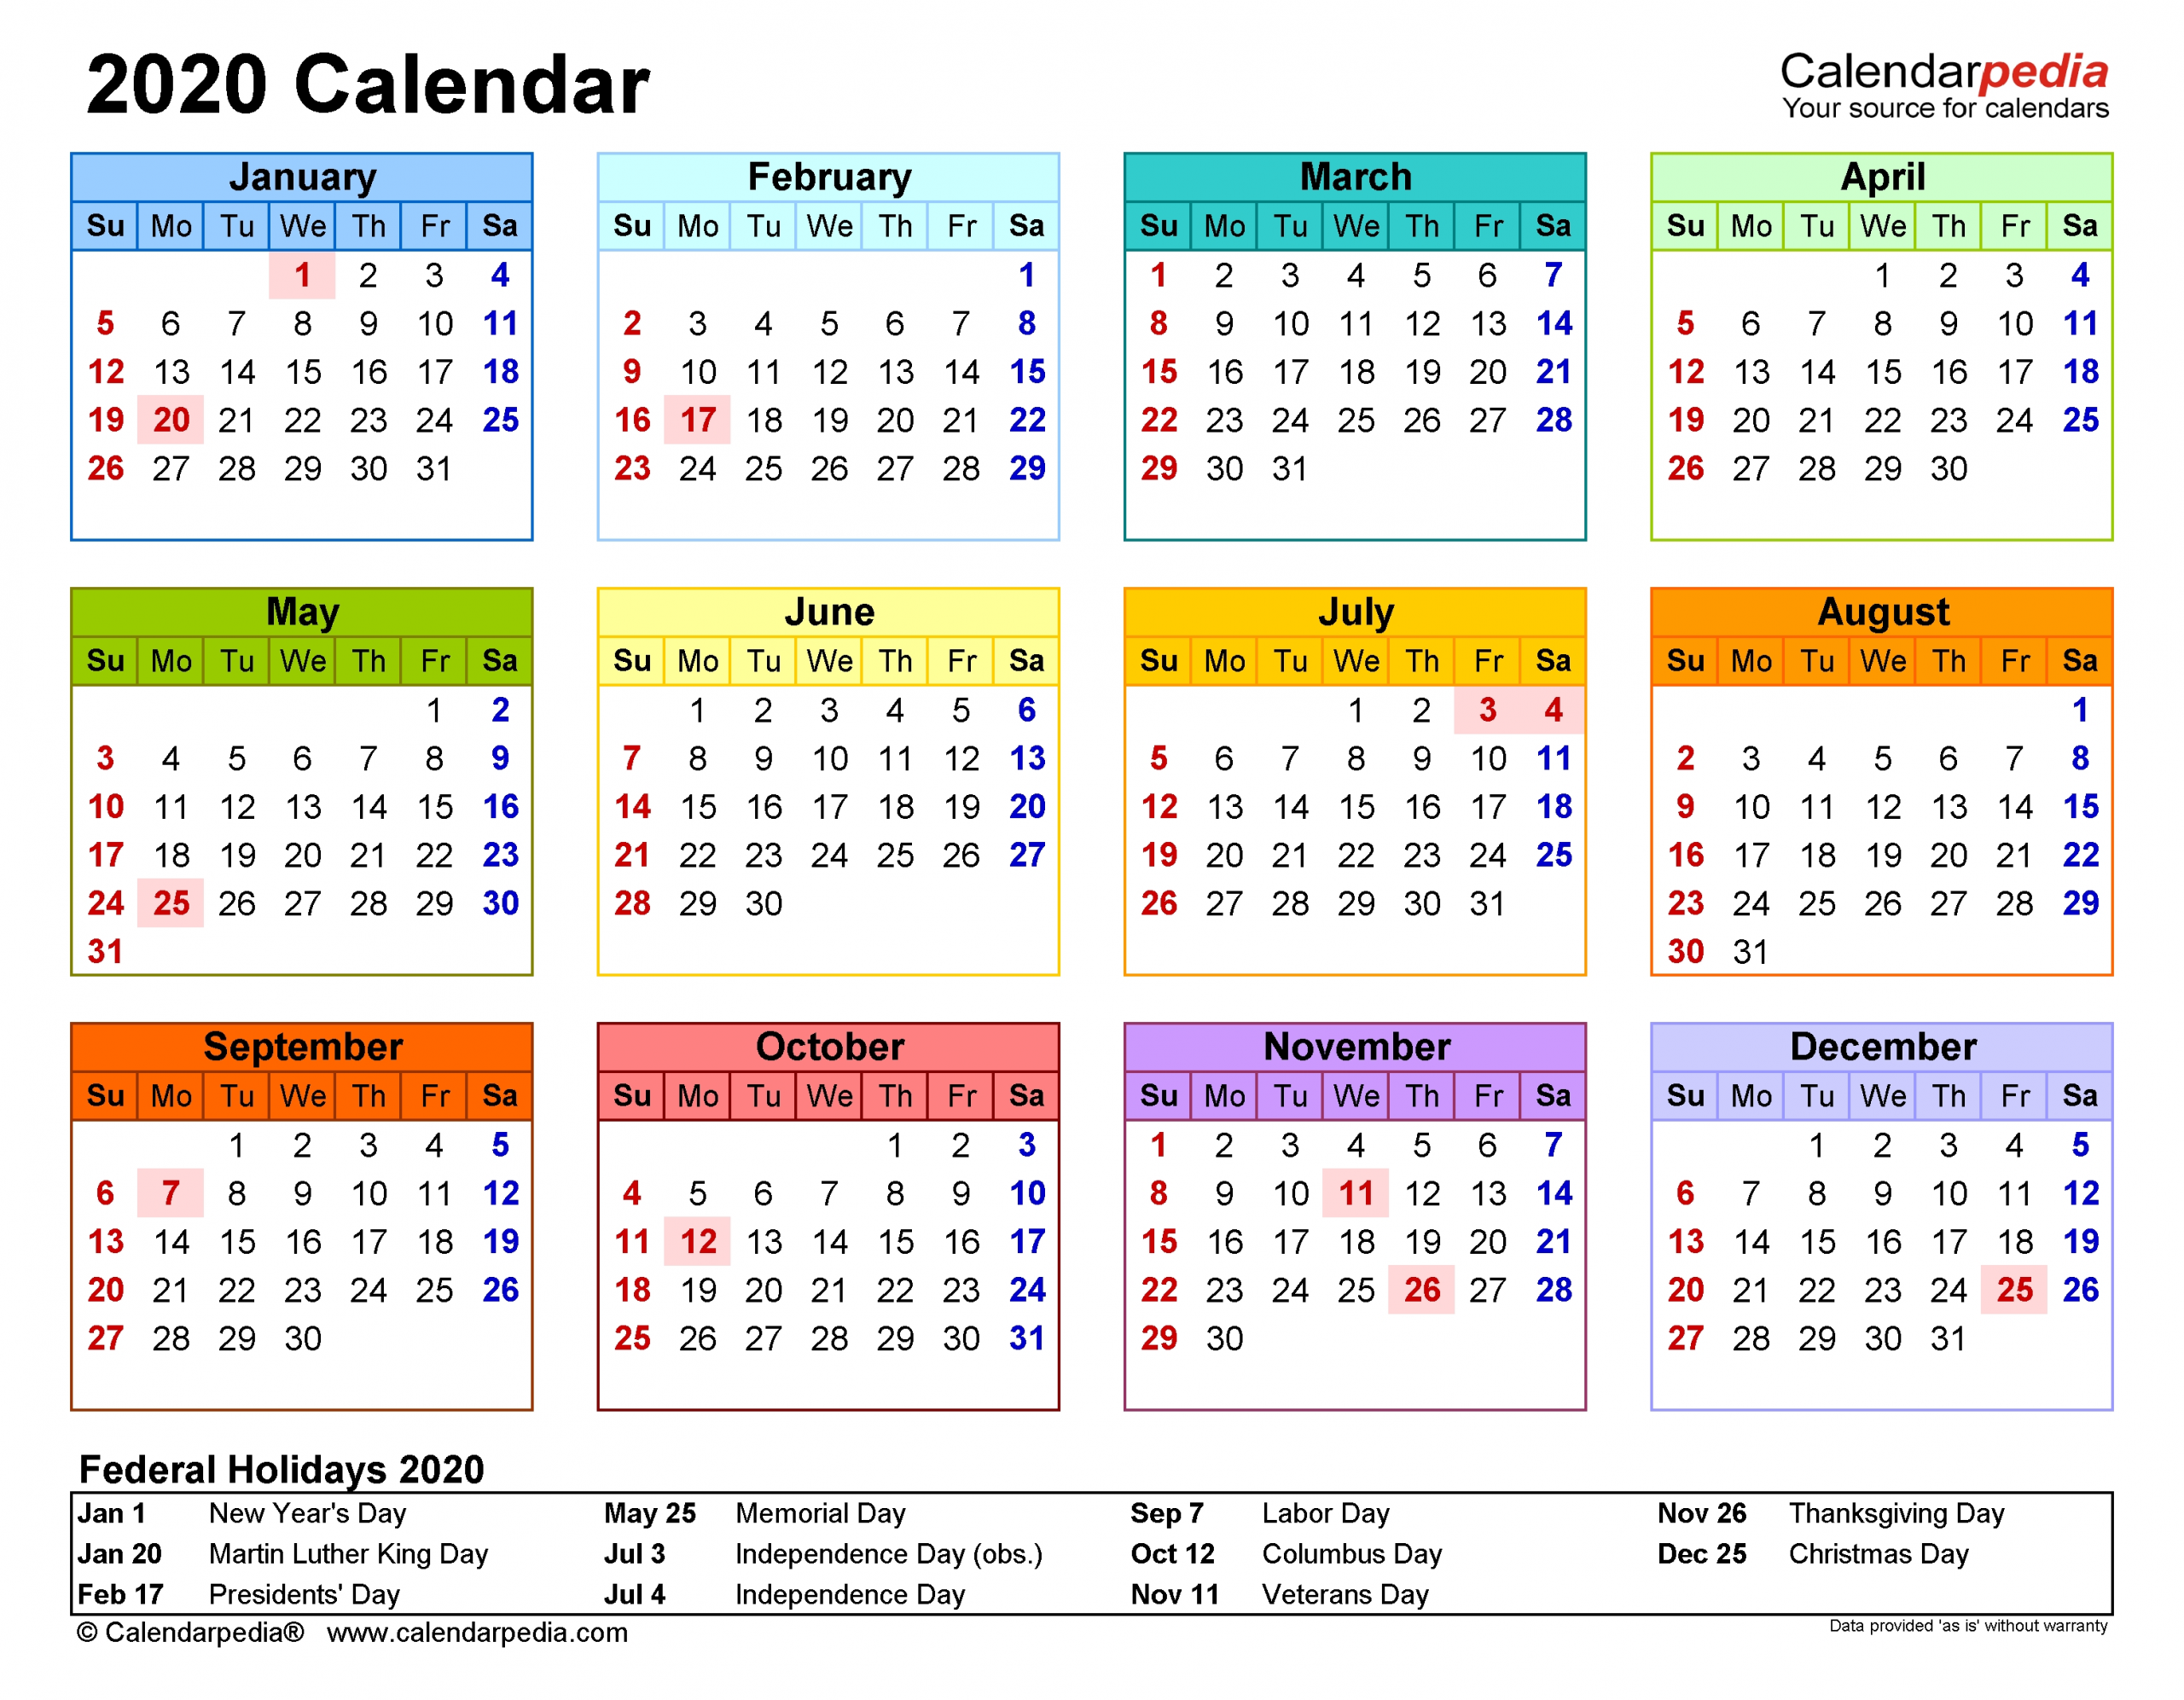 2020 Calendar - Free Printable Pdf Templates - Calendarpedia with regard to Printable Calendars 2020 Pocket Size